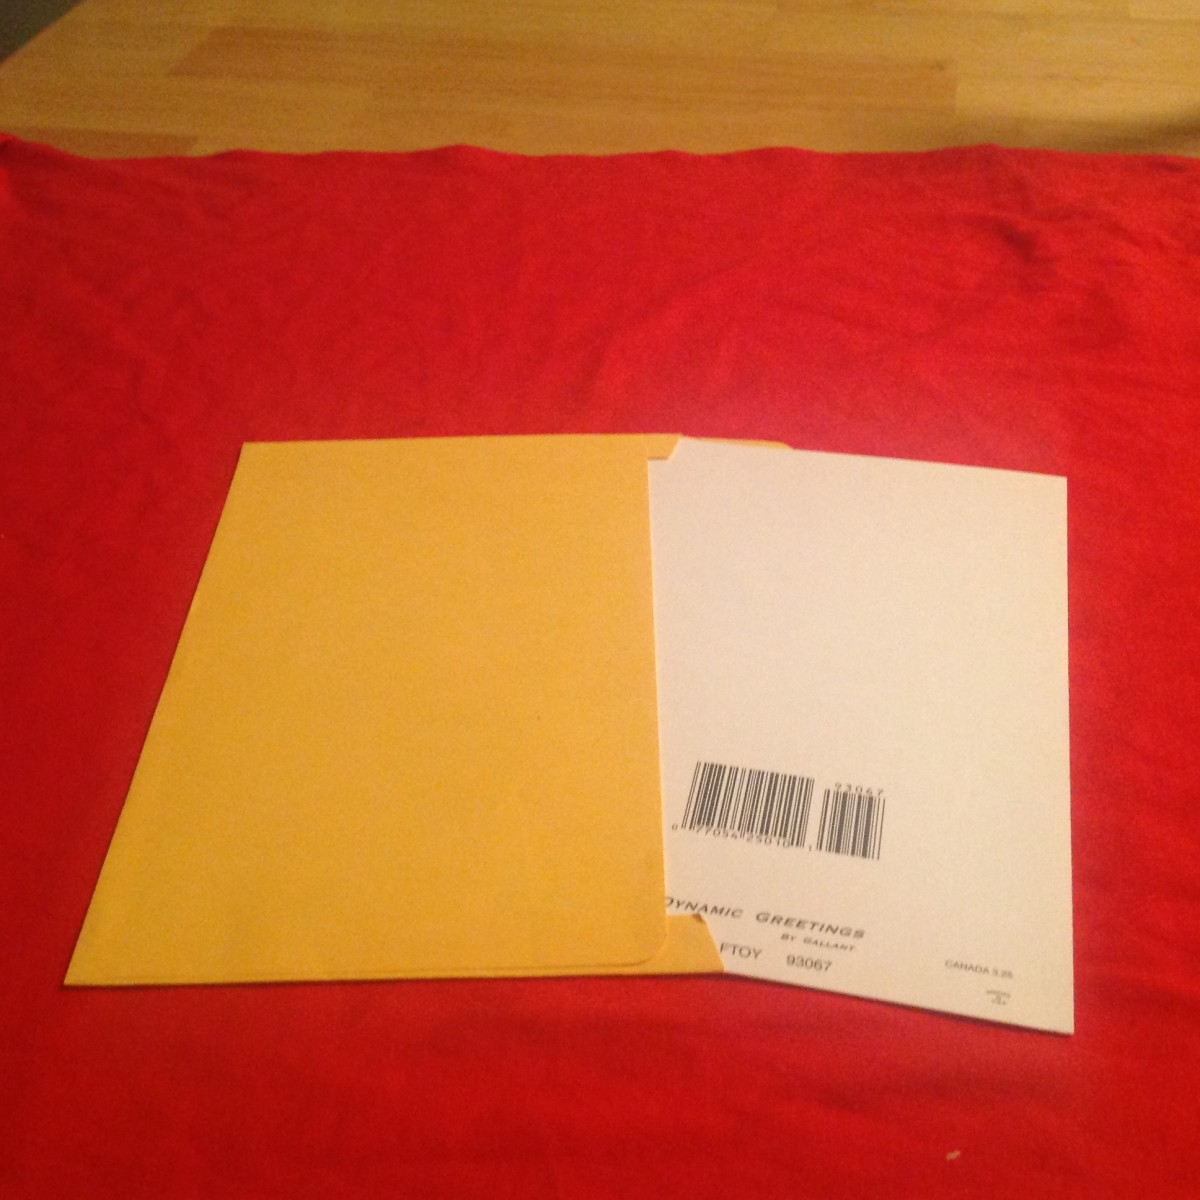 The wrong way to put a folded greeting card in its envelope